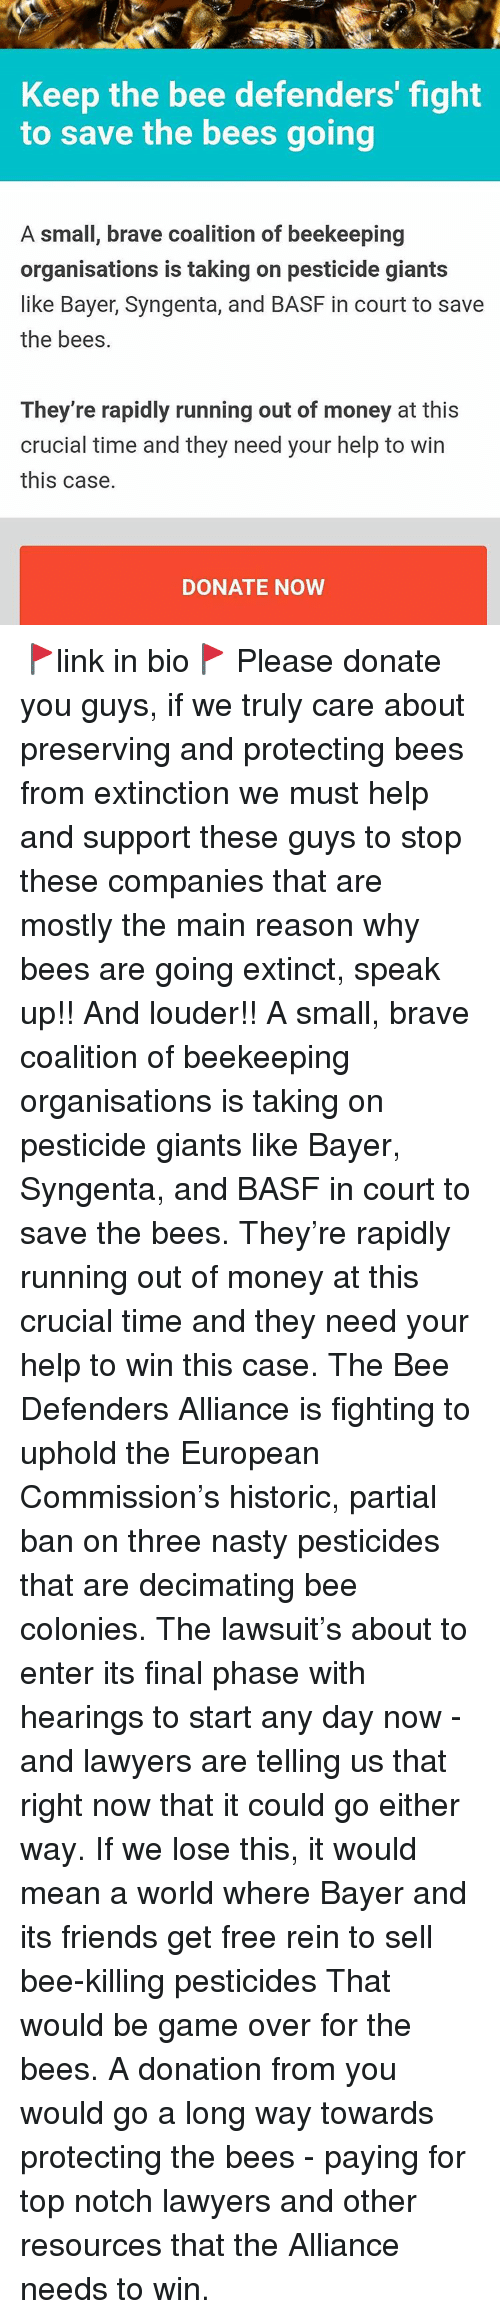 syngenta: Keep the bee defenders' fight  to save the bees going  A small, brave coalition of beekeeping  organisations is taking on pesticide giants  like Bayer, Syngenta, and BASF in court to save  the bees.  They're rapidly running out of money at this  crucial time and they need your help to win  this case.  DONATE NOW 🚩link in bio🚩 Please donate you guys, if we truly care about preserving and protecting bees from extinction we must help and support these guys to stop these companies that are mostly the main reason why bees are going extinct, speak up!! And louder!! A small, brave coalition of beekeeping organisations is taking on pesticide giants like Bayer, Syngenta, and BASF in court to save the bees. They're rapidly running out of money at this crucial time and they need your help to win this case. The Bee Defenders Alliance is fighting to uphold the European Commission's historic, partial ban on three nasty pesticides that are decimating bee colonies. The lawsuit's about to enter its final phase with hearings to start any day now - and lawyers are telling us that right now that it could go either way. If we lose this, it would mean a world where Bayer and its friends get free rein to sell bee-killing pesticides That would be game over for the bees. A donation from you would go a long way towards protecting the bees - paying for top notch lawyers and other resources that the Alliance needs to win.